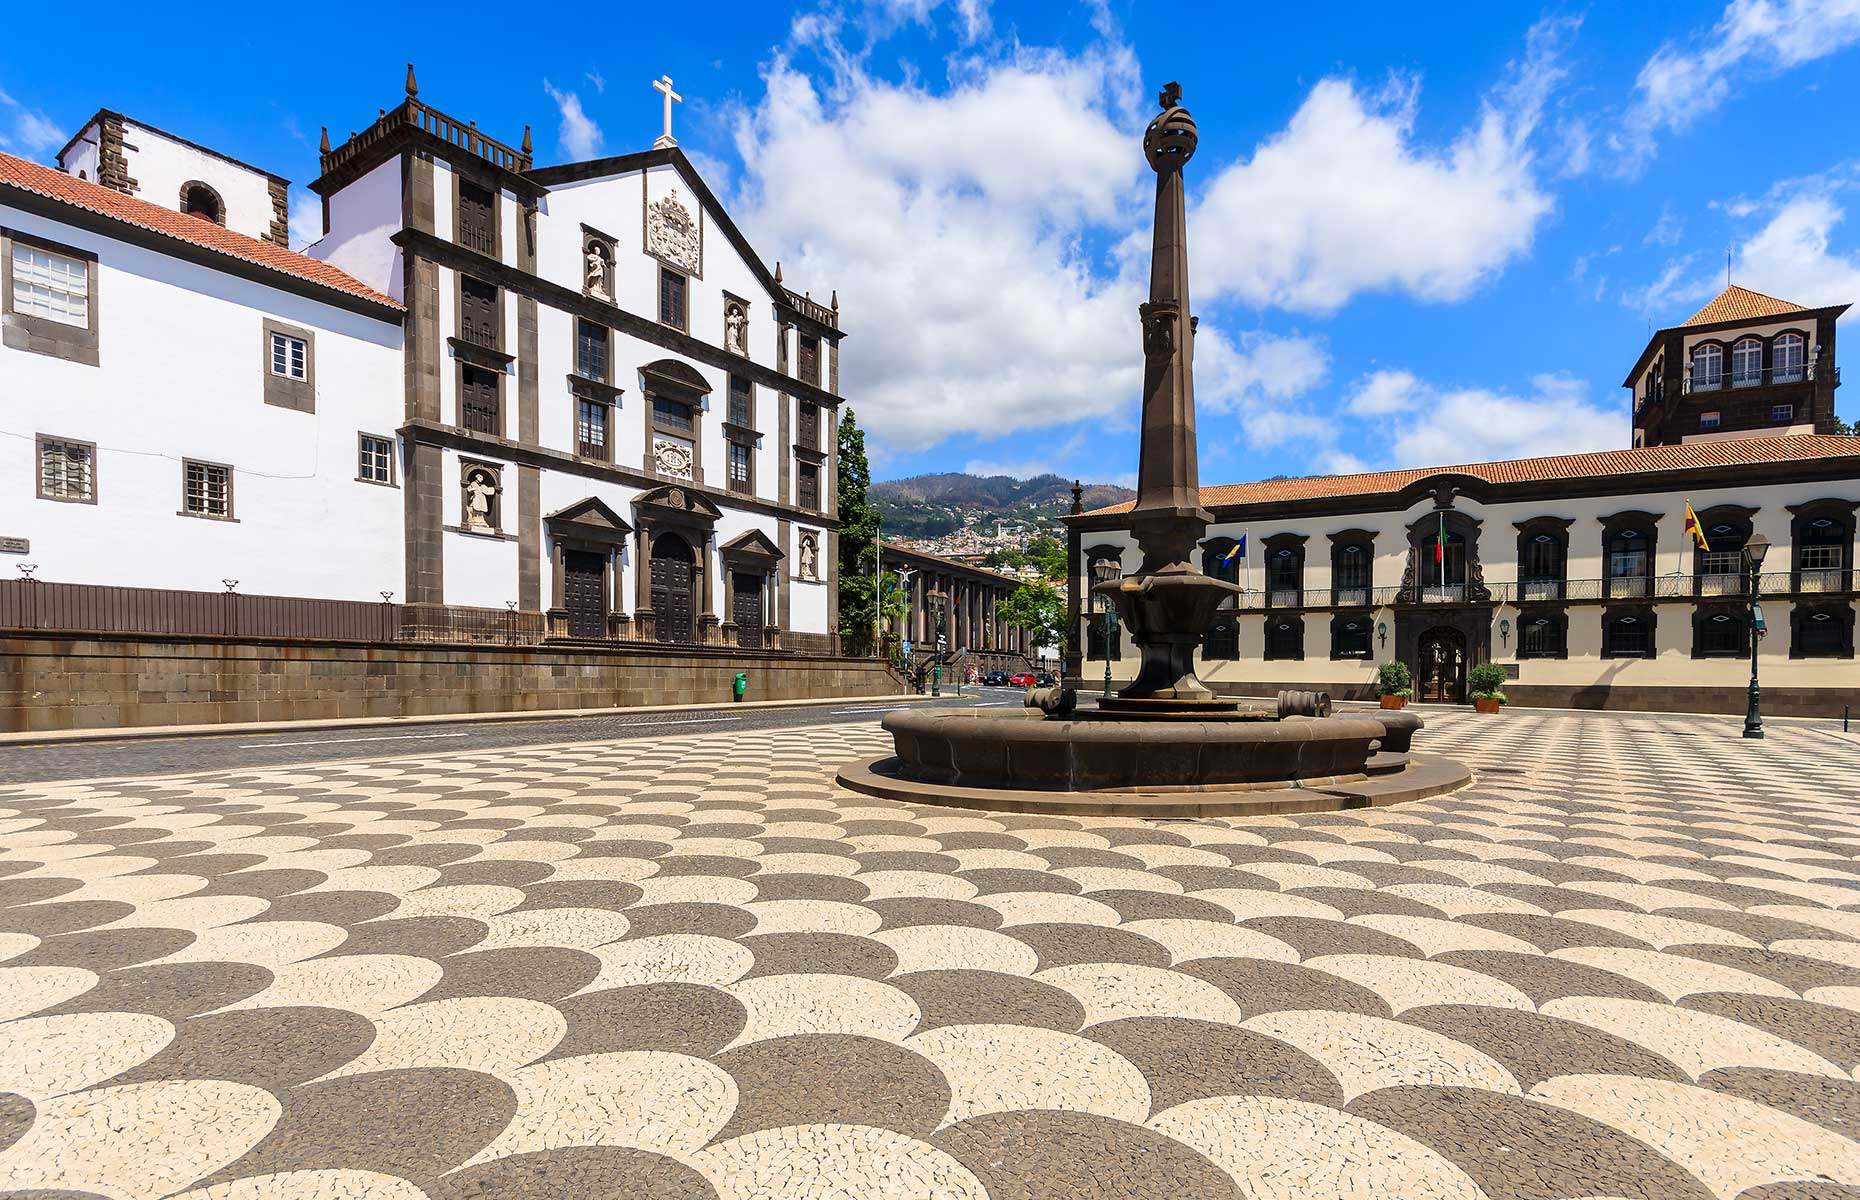 Main square in the historic heart of Funchal (Image: Pawel Kazmierczak/Shutterstock)